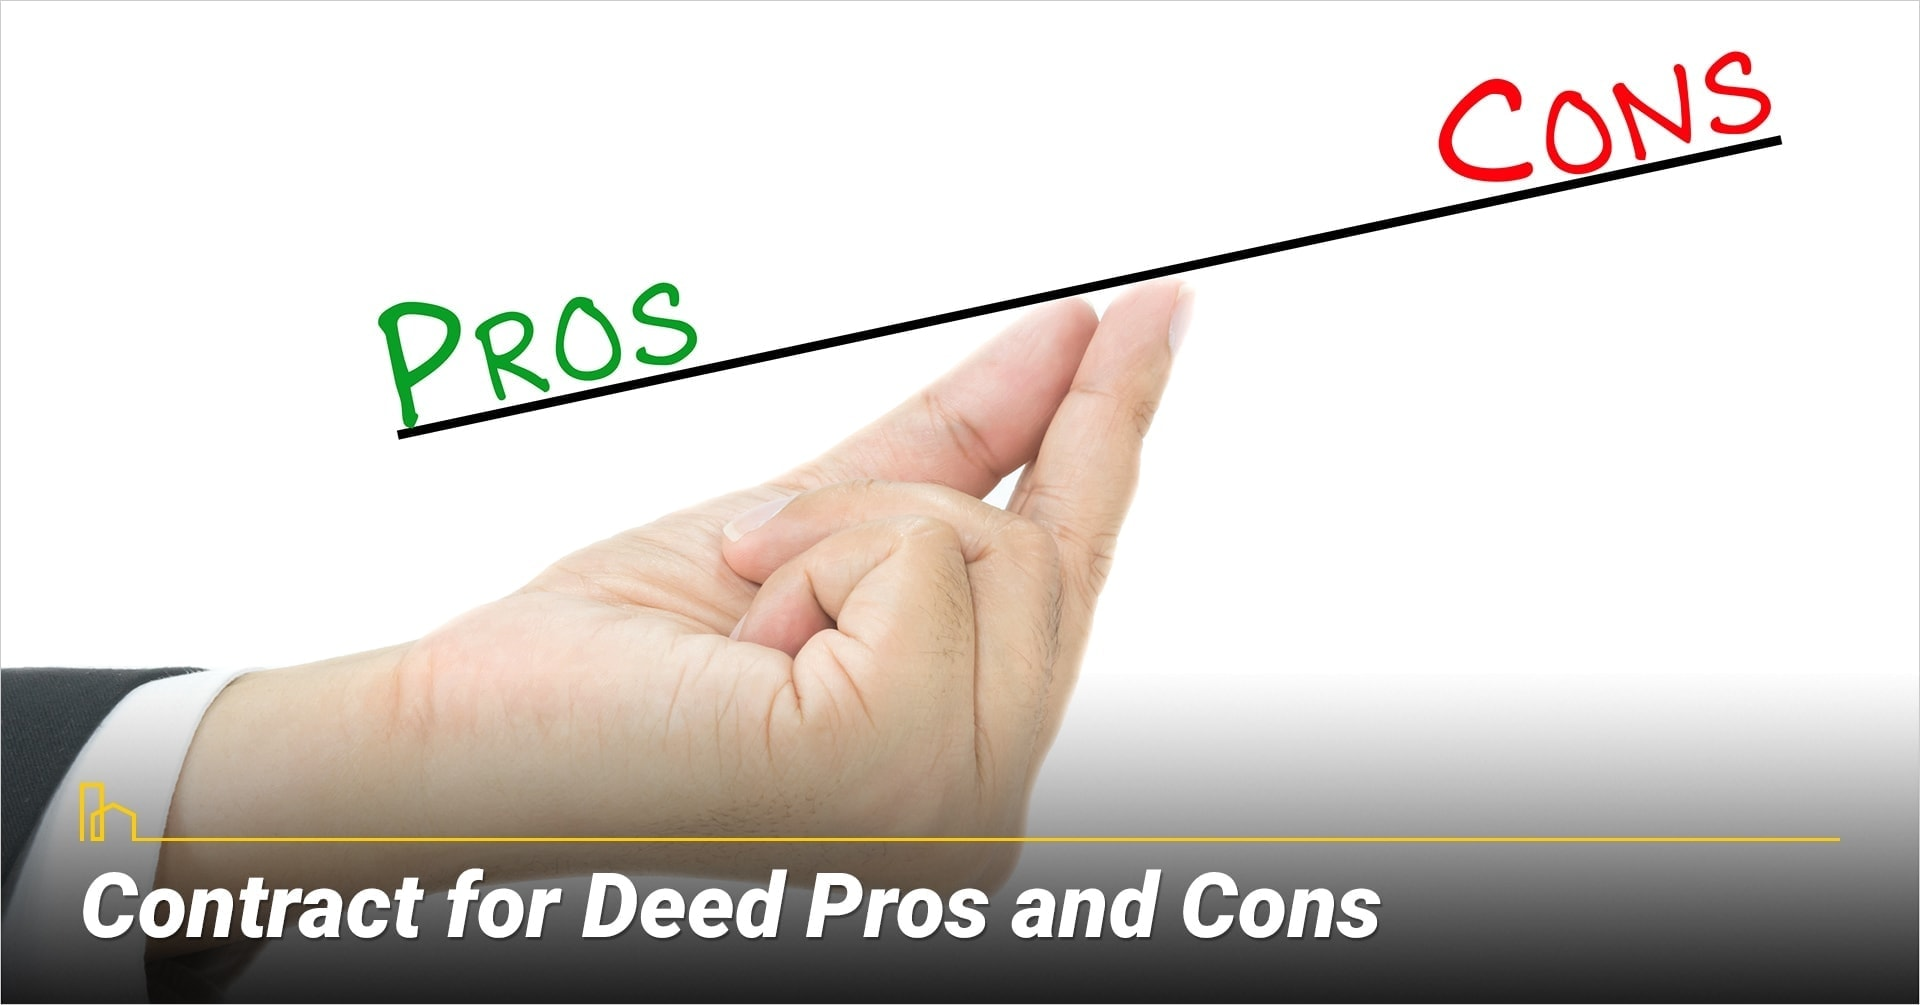 Contract for Deed Pros and Cons, pluses and minuses of a Contract for Deed